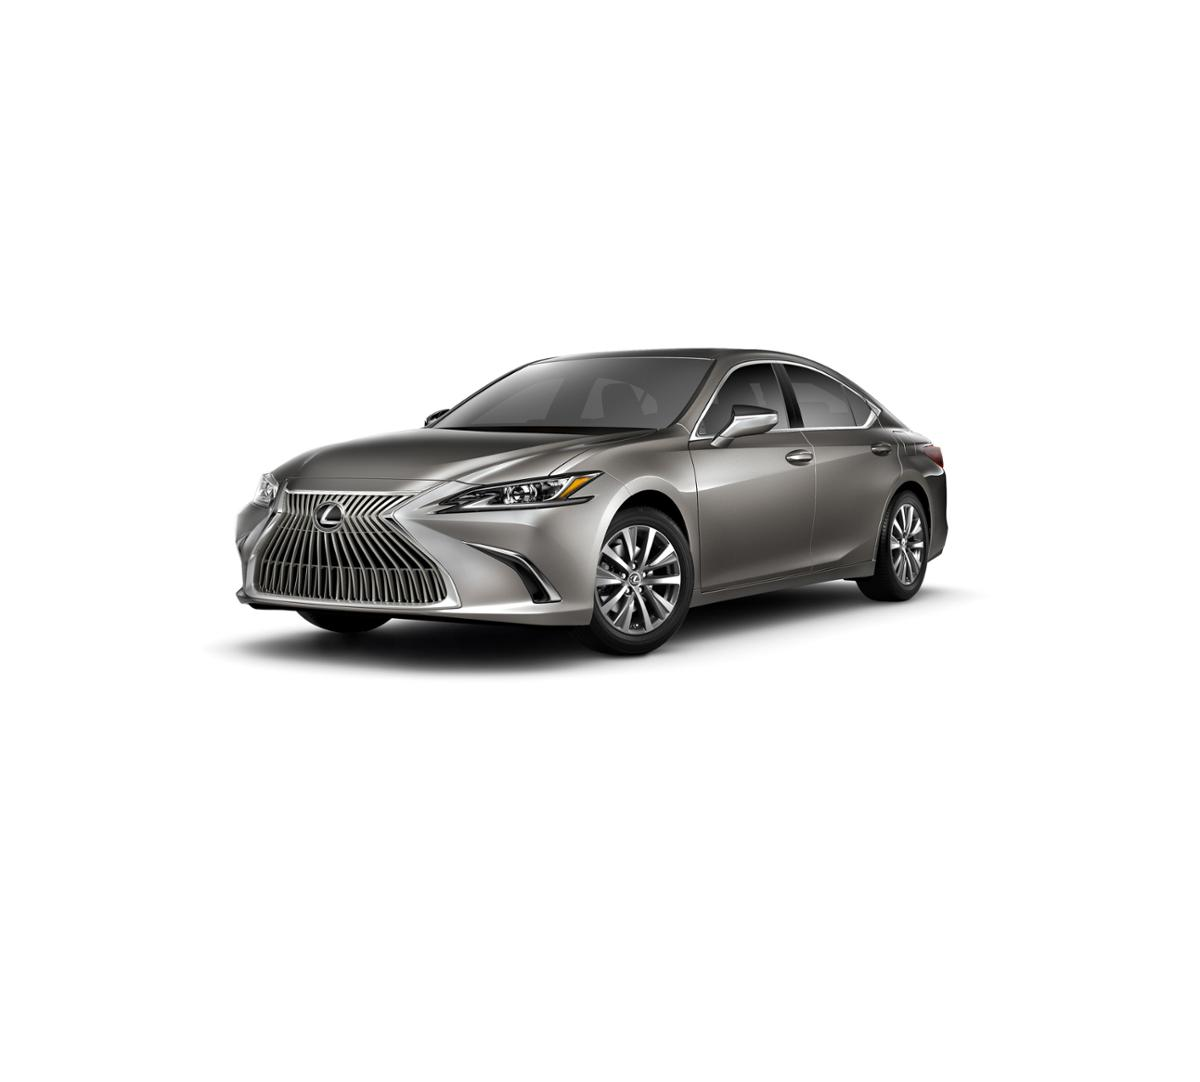 2019 Lexus ES 350 Vehicle Photo in Mission Viejo, CA 92692